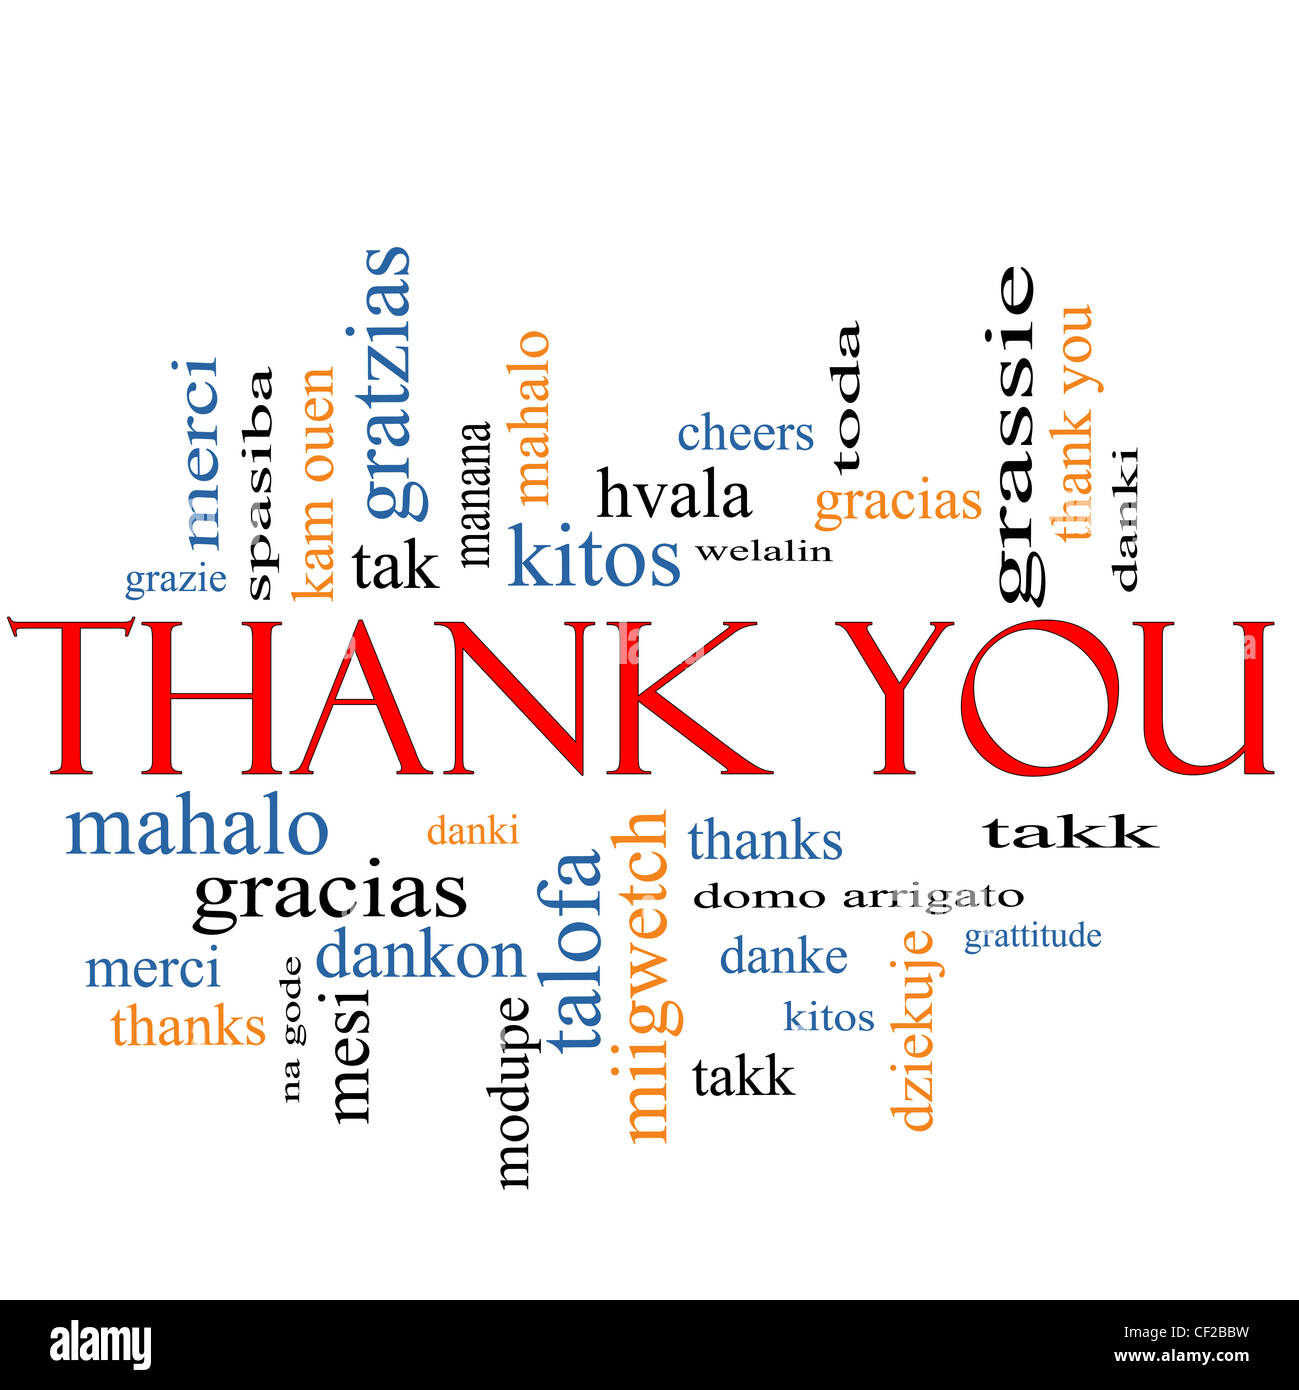 thank you word cloud concept with great terms in different languages